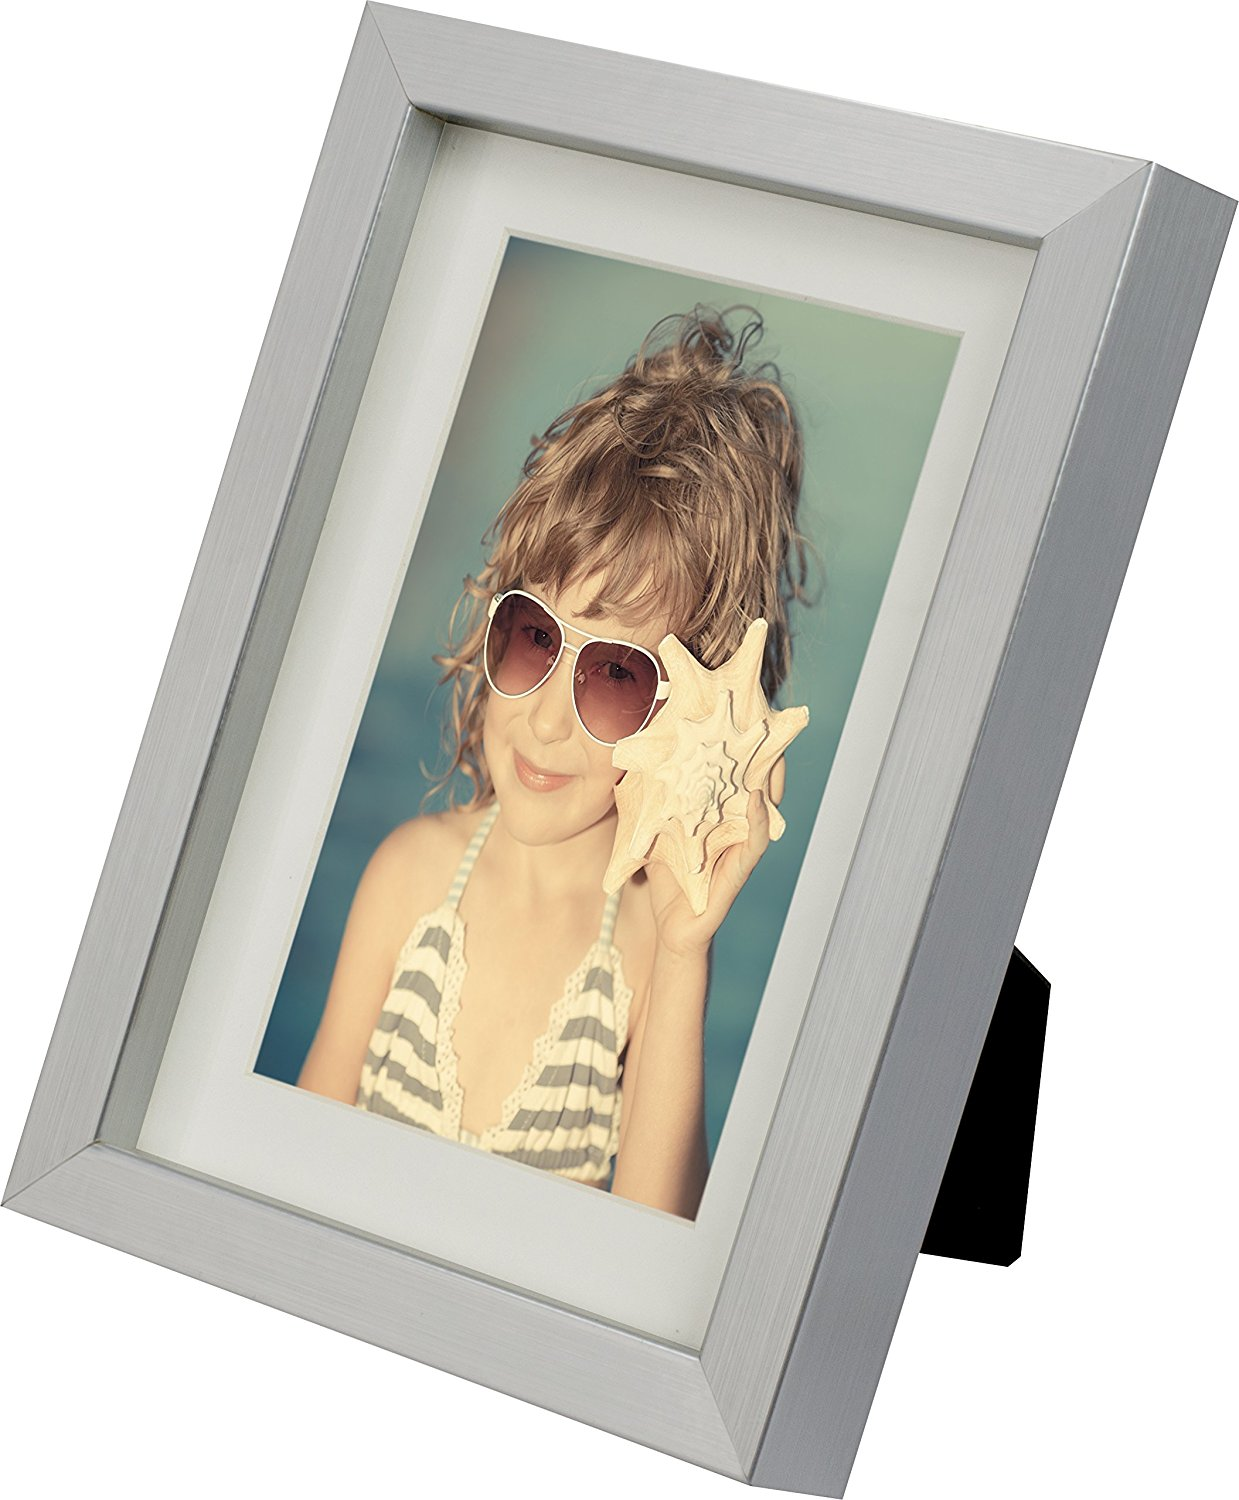 5 x 7-Inch Picture Photo Frame with mount for 4 x 6-Inch photo, ALU